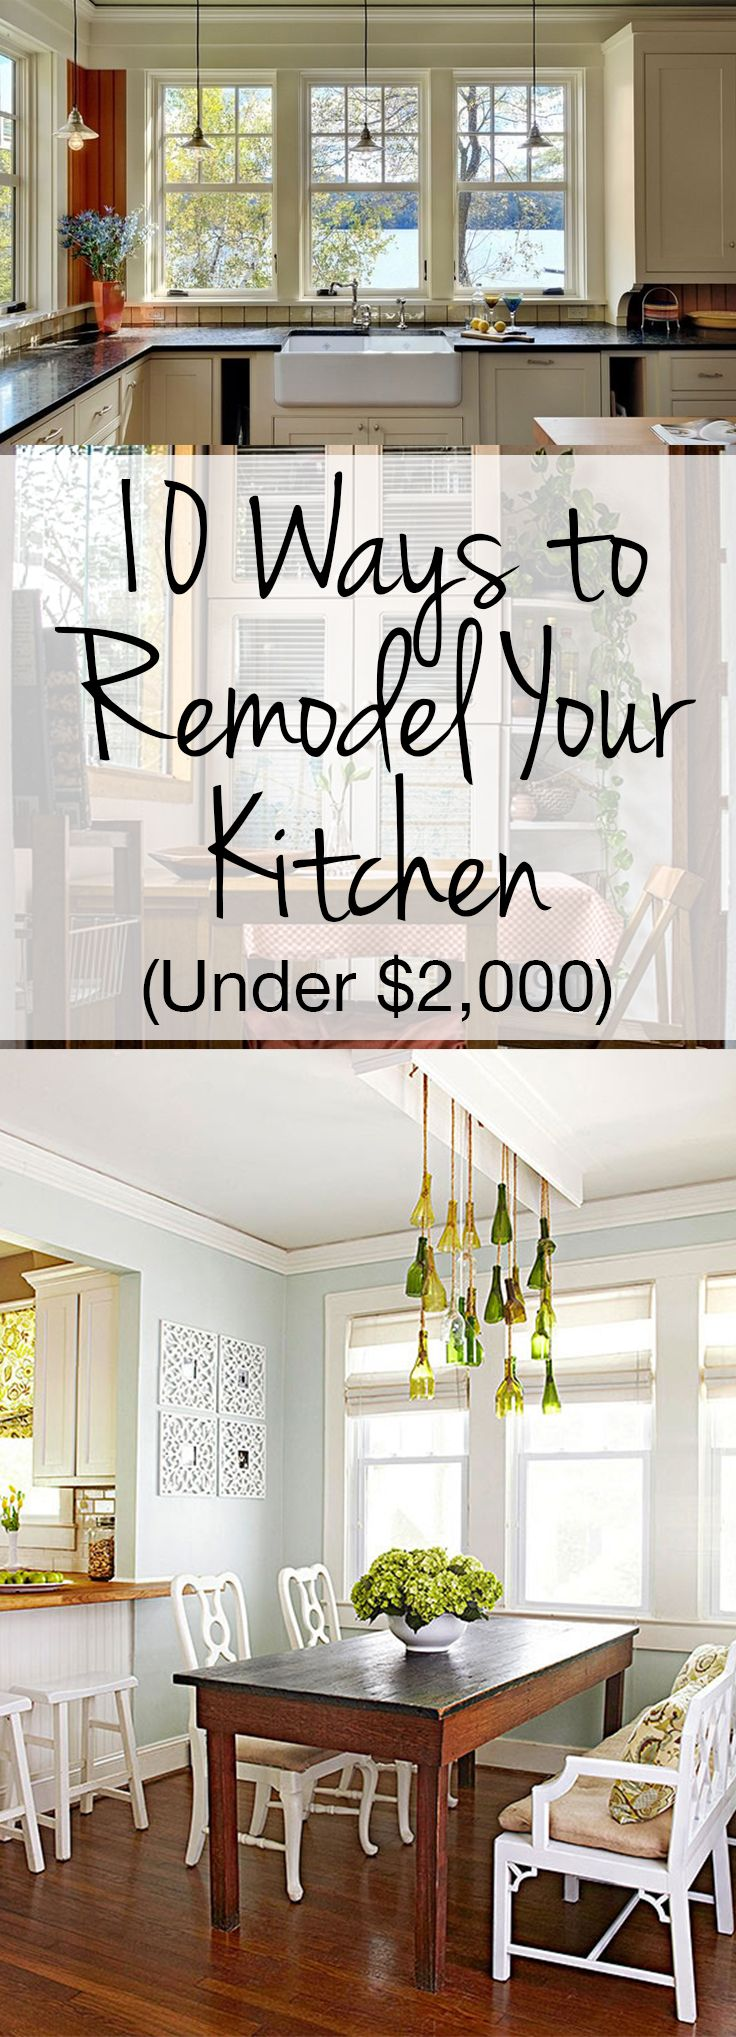 Best 25 kitchen remodeling ideas on pinterest kitchen for Inexpensive kitchen renovations